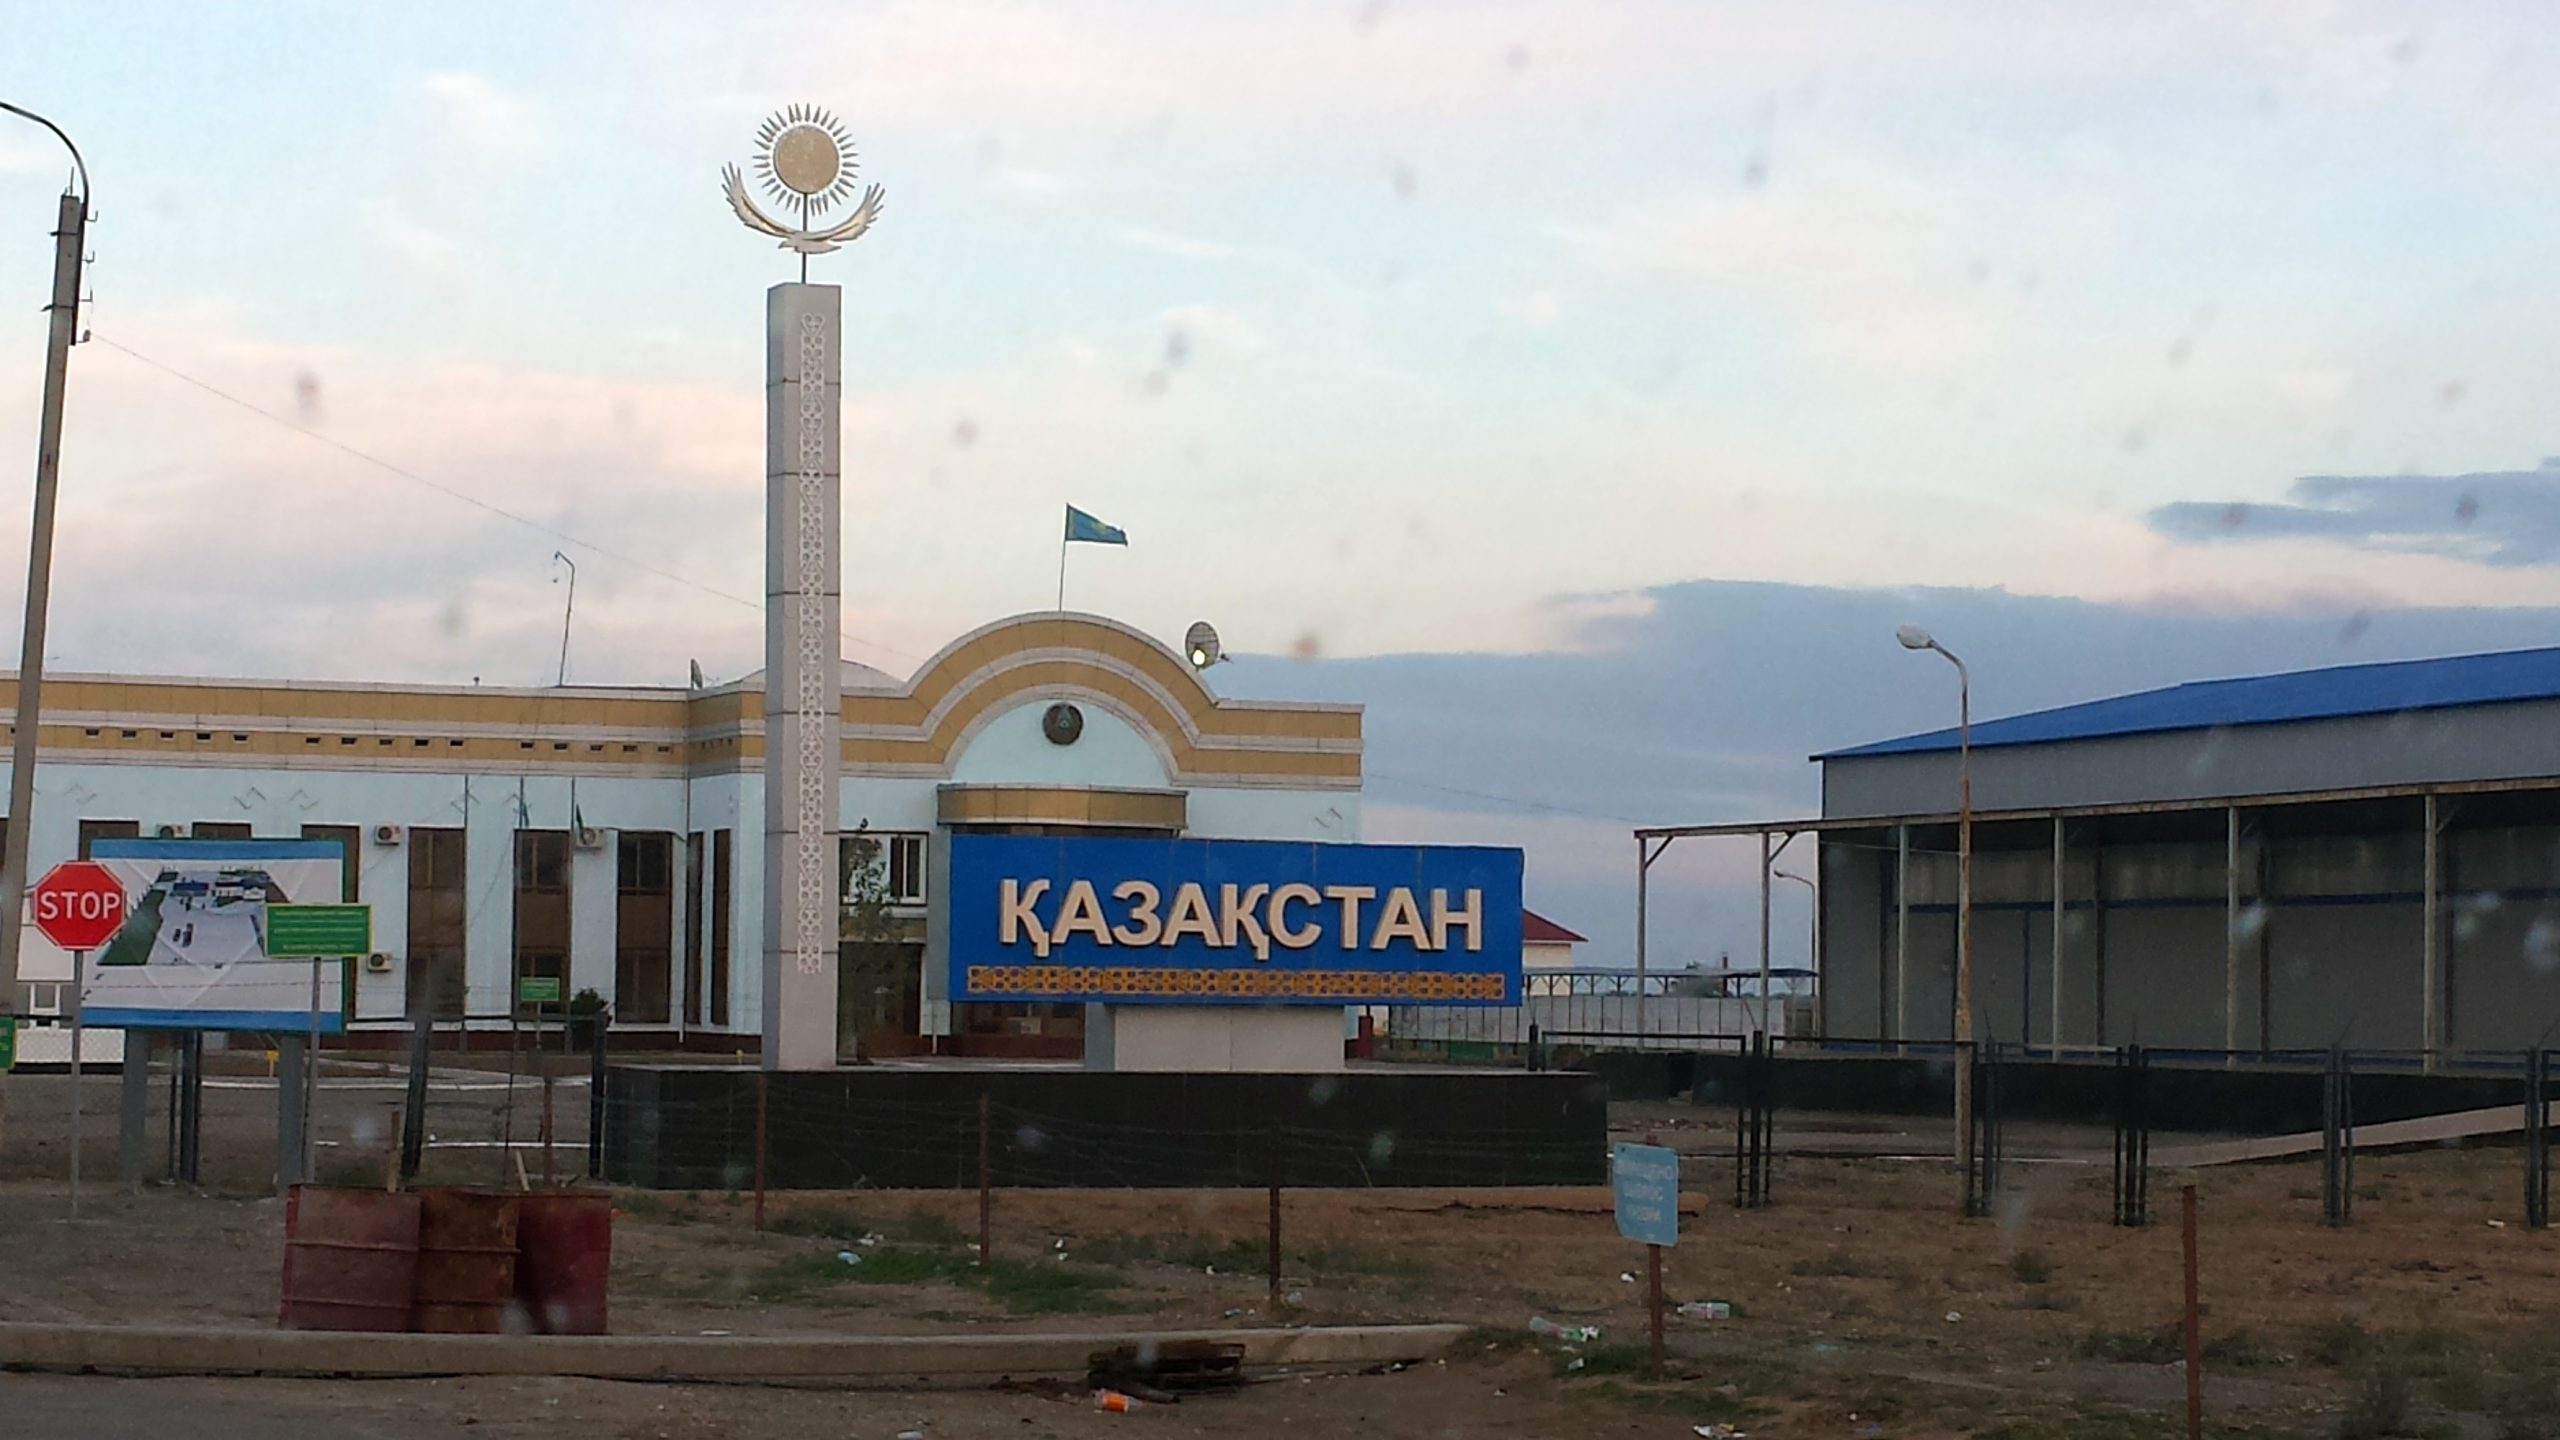 Day 31: Visit To Kazakhstan Embassy & The Wonderful Kazakhs